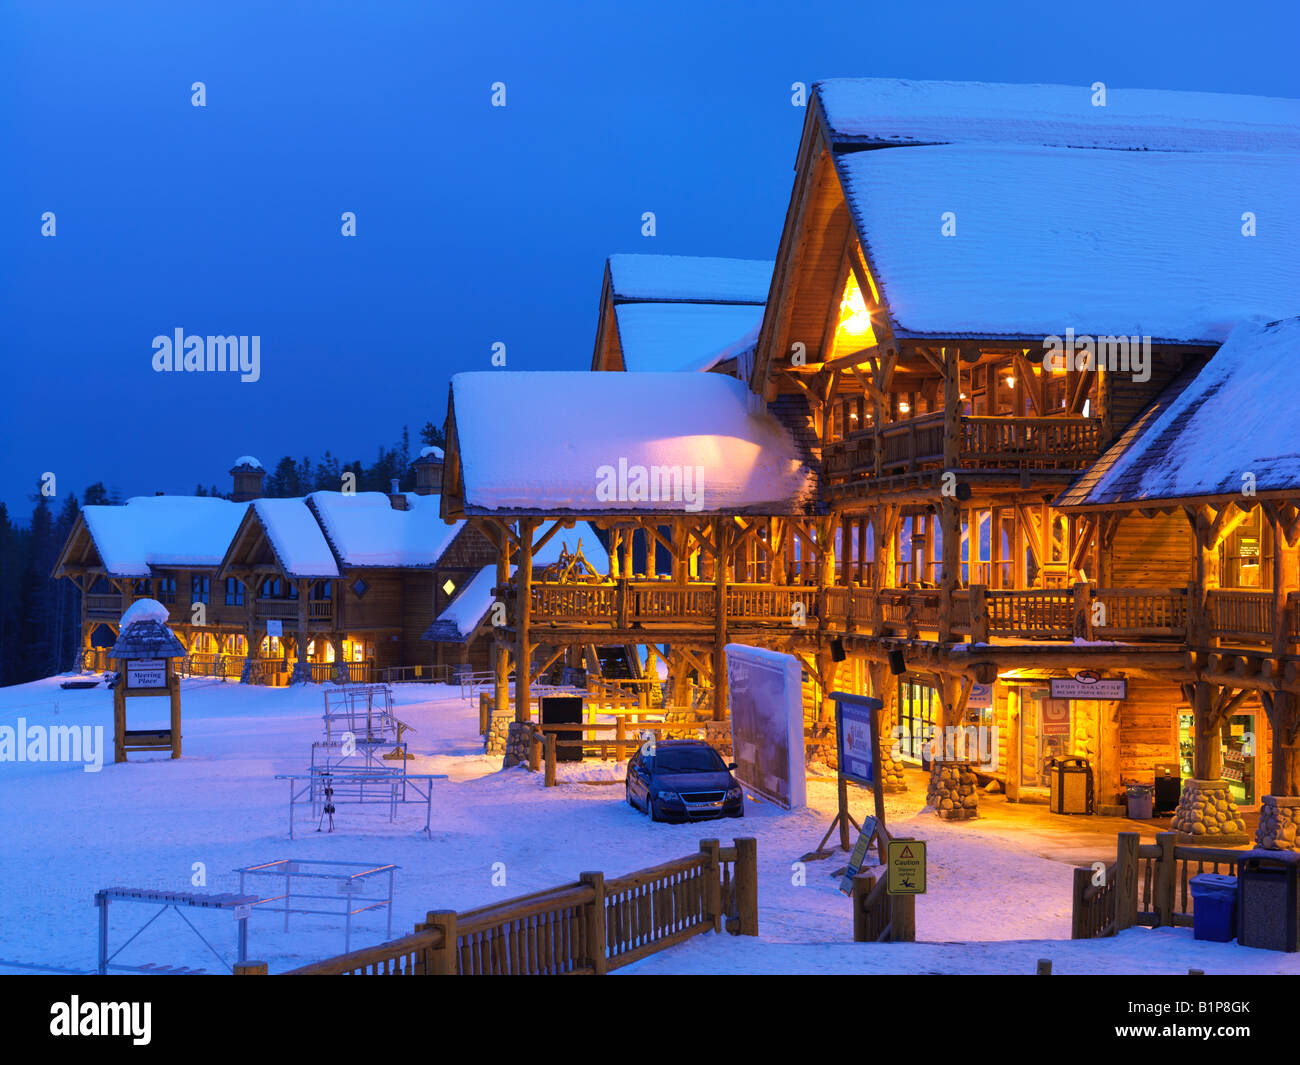 ski lodge in winter - photo #42